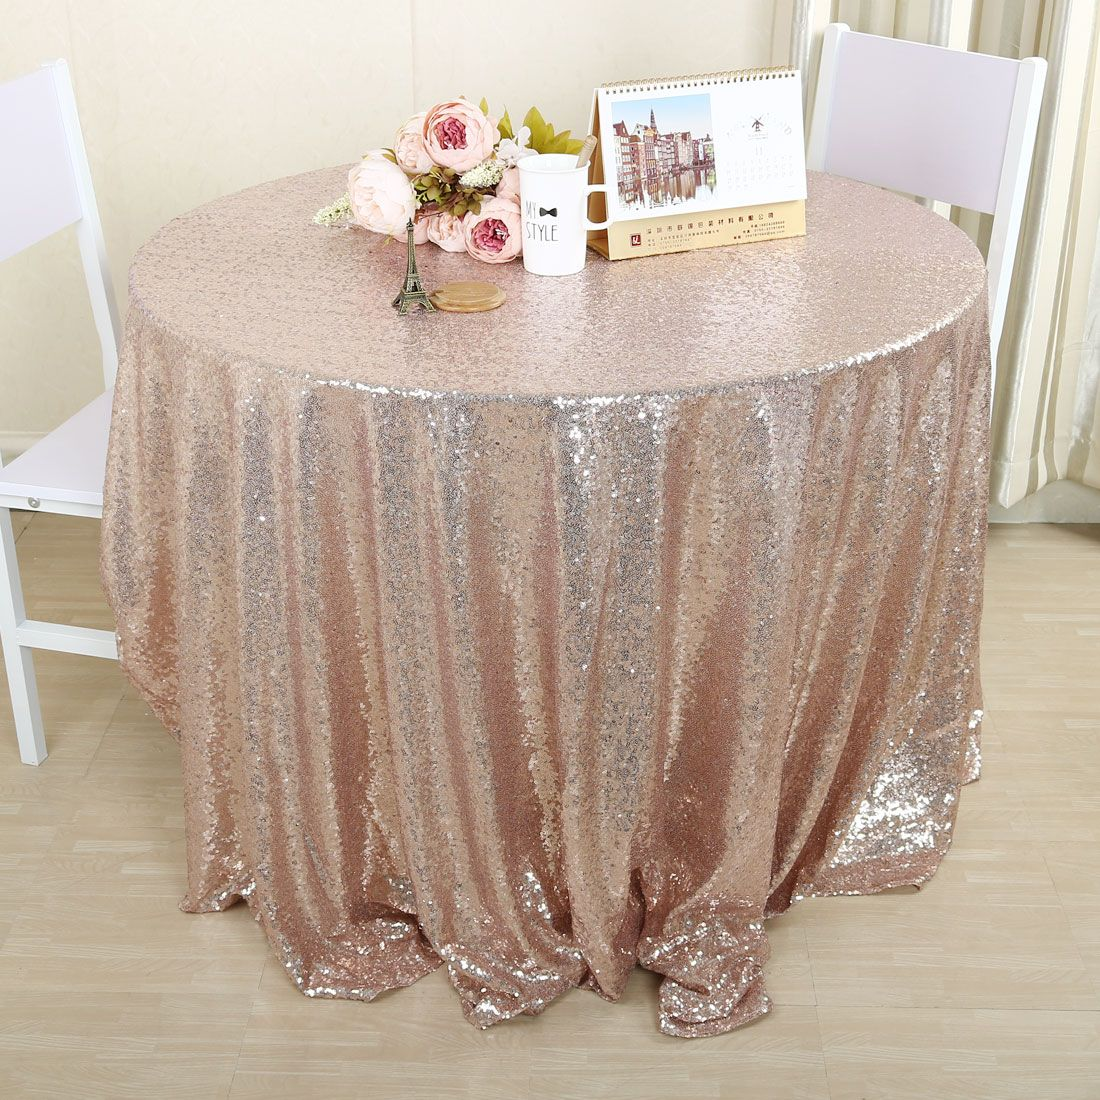 Sparkle Sequin Tablecloth Table Cloth Cover for Banquet Wedding Party Decor 26b1af8d8620